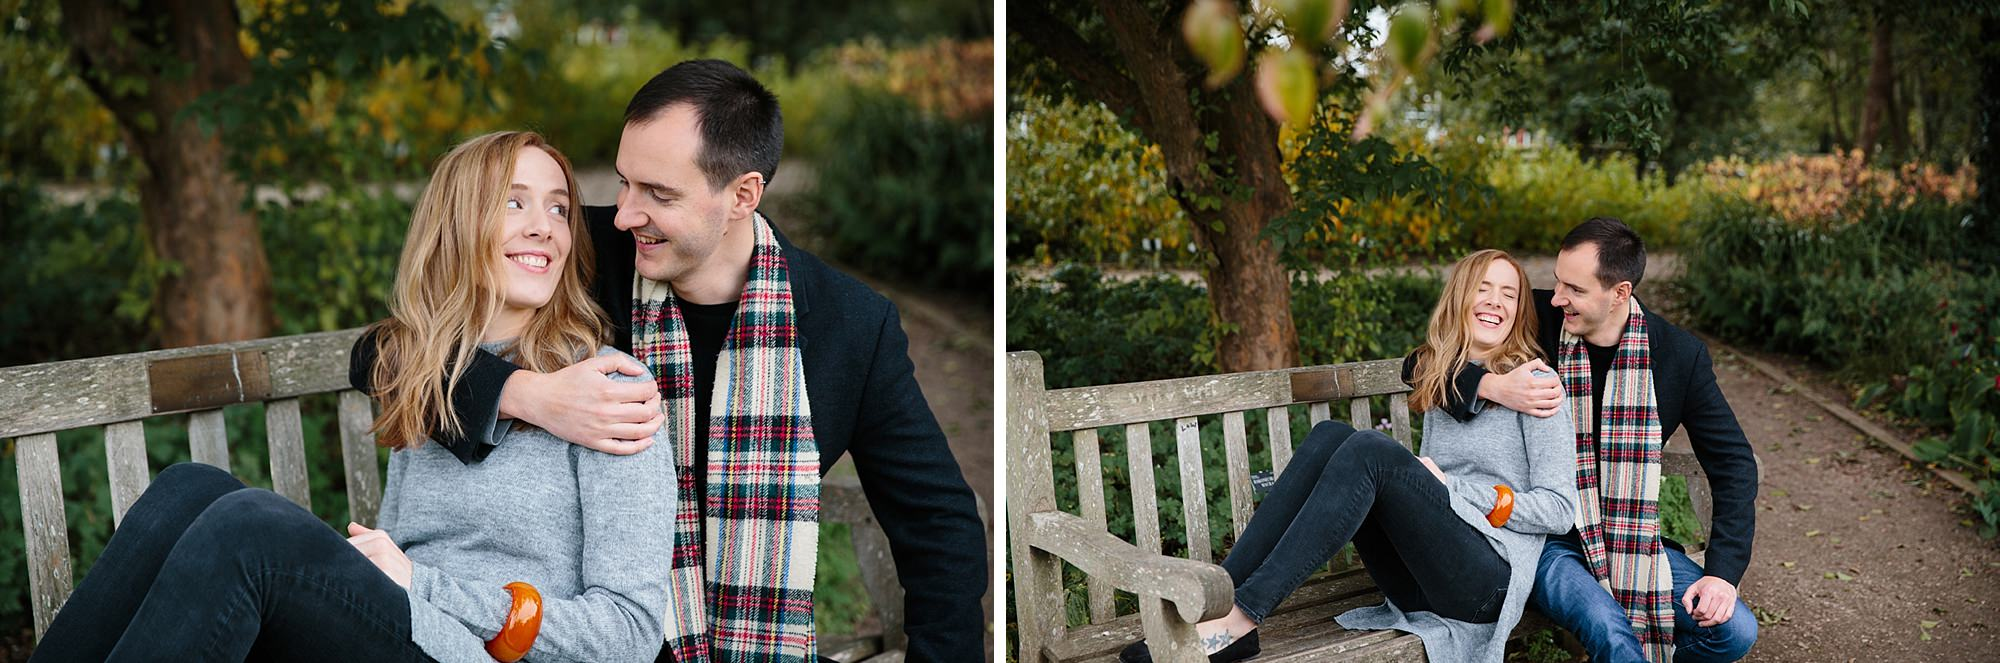 Oxford engagement photography couple on bench